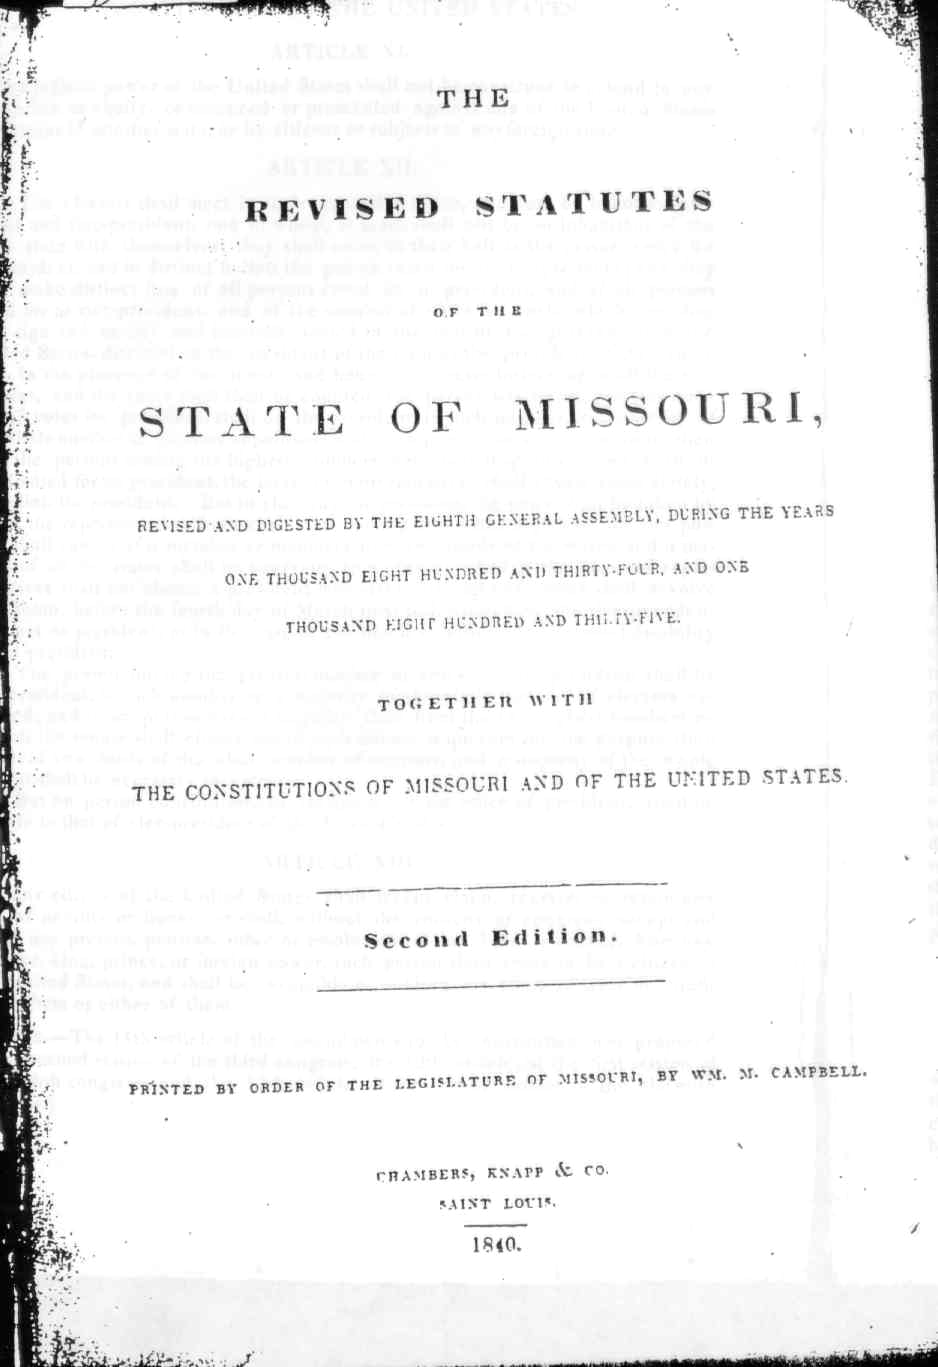 February 2017 A Nation Beguiled New Rudder Mixer And Speed Controller Driver Revisedand Now Missouri Publishes The 13th Amendment